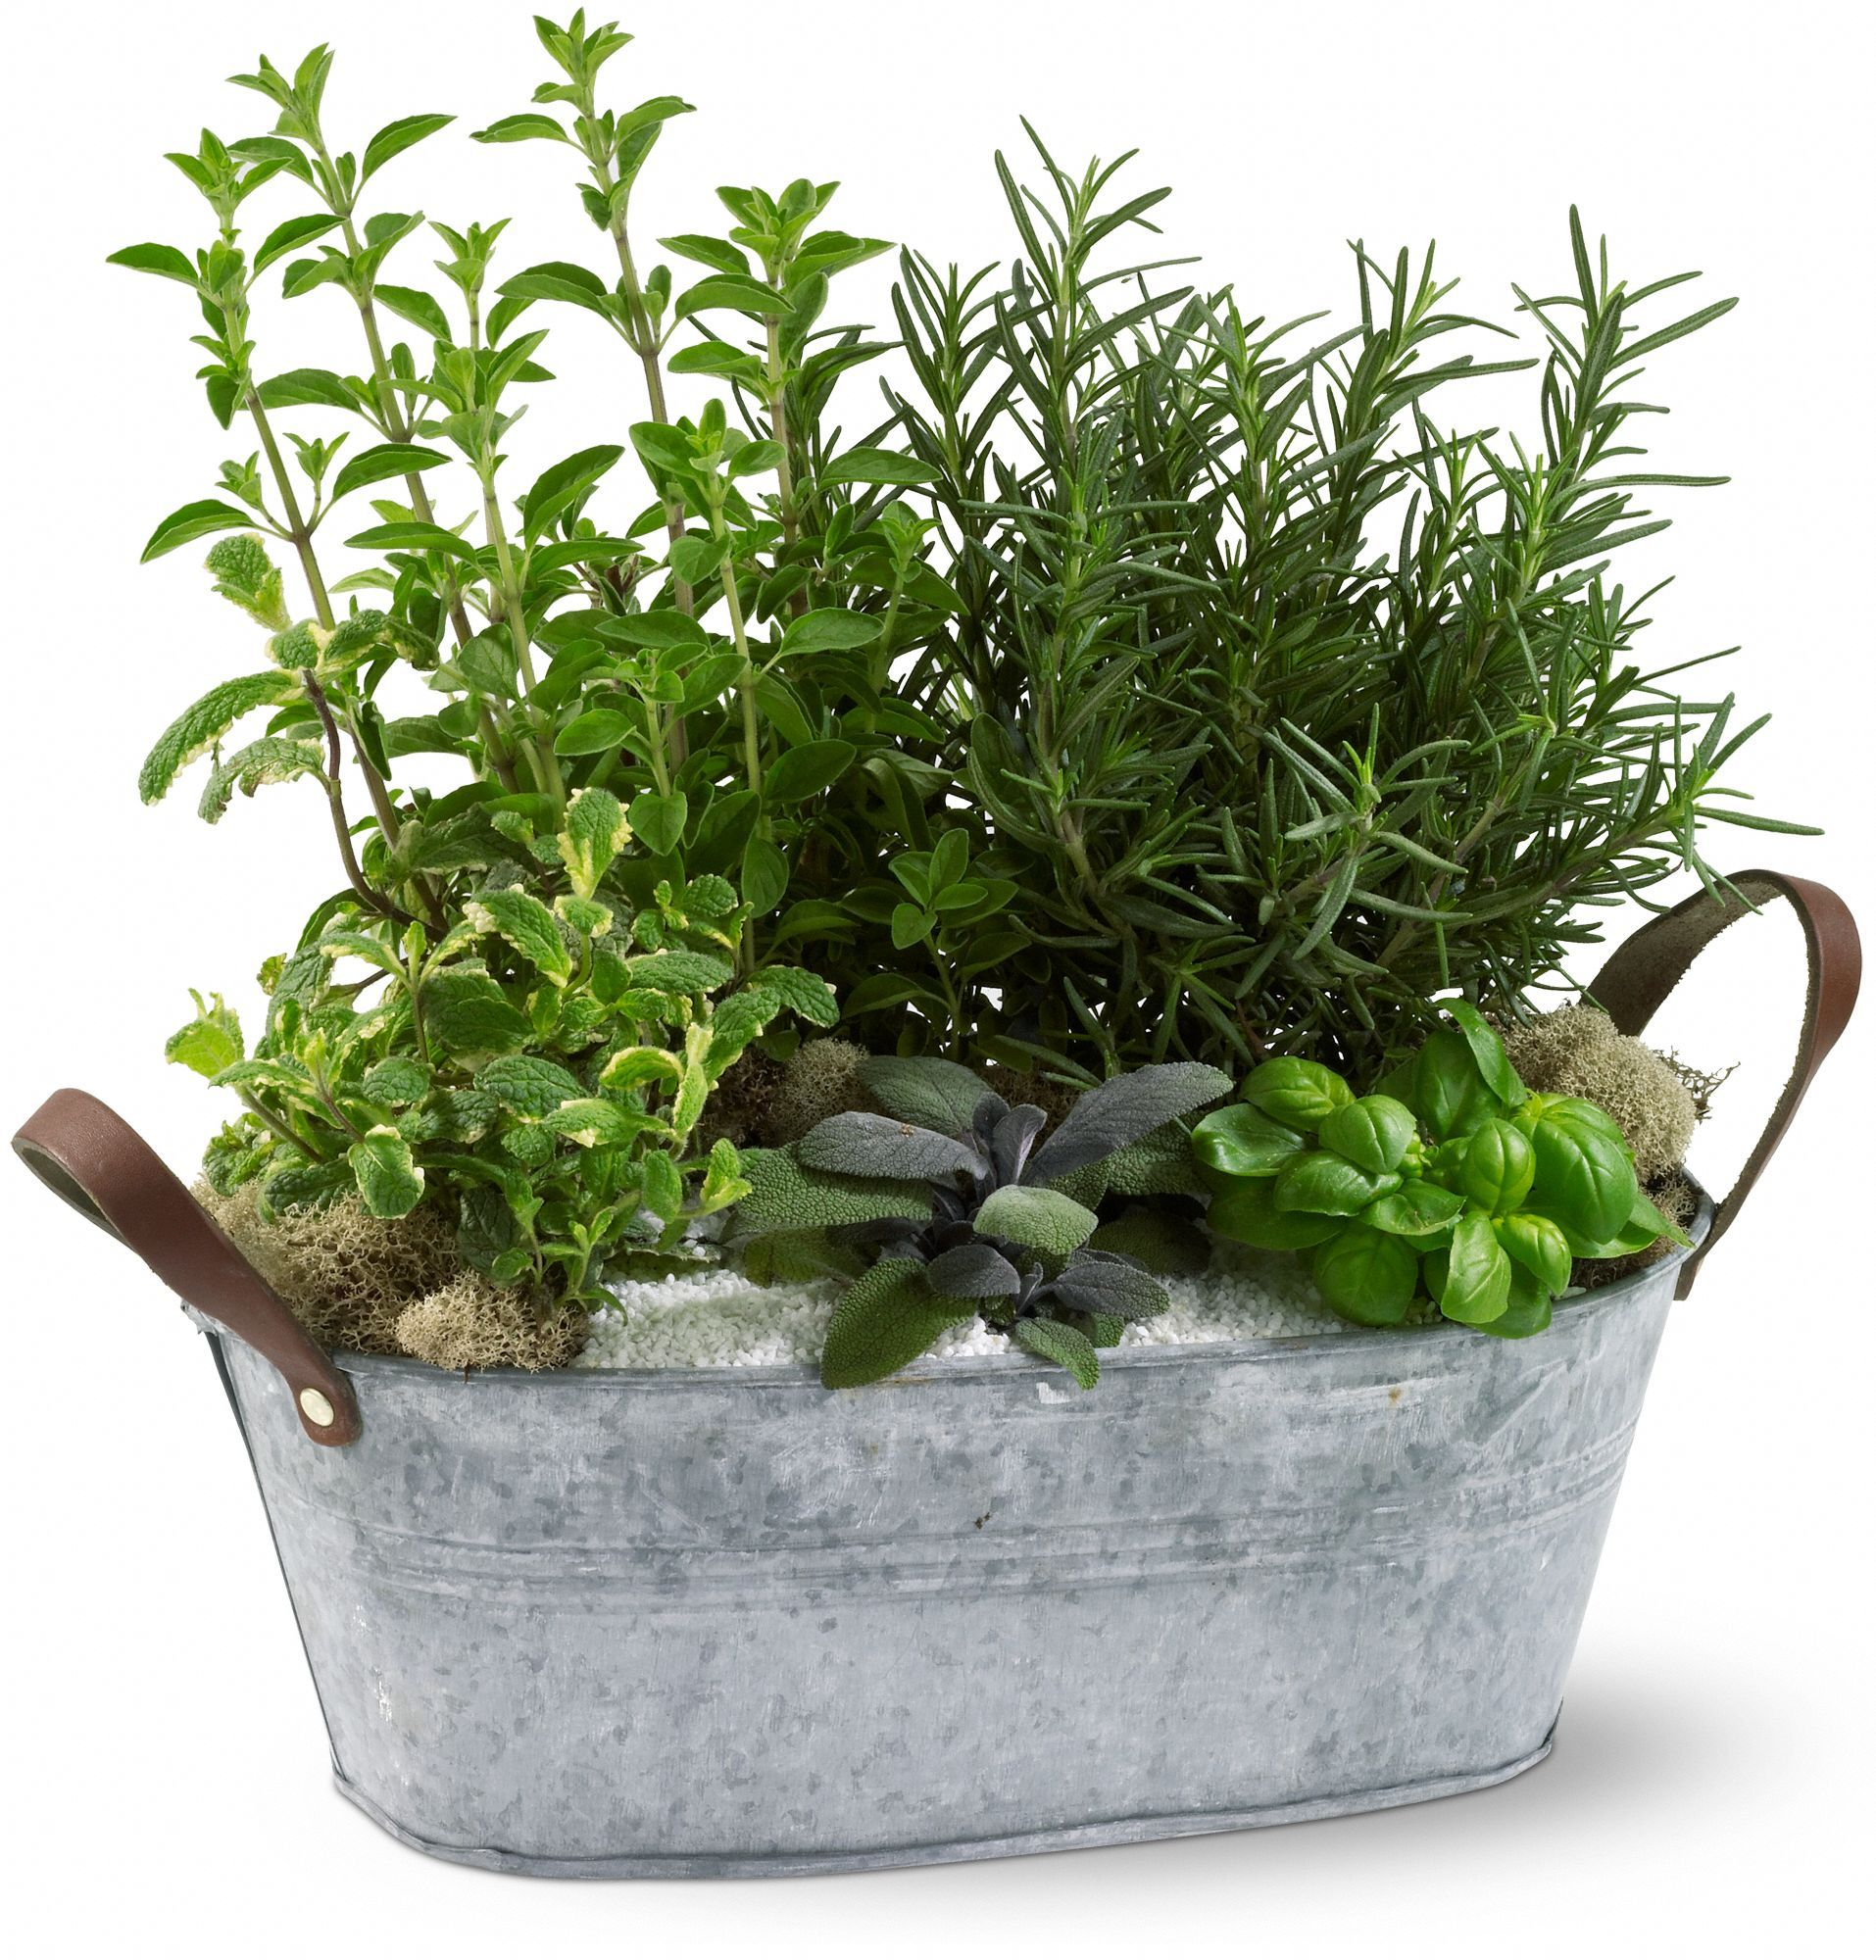 Order Herb Garden Plant From Edelweiss Flower Boutique, Your Local